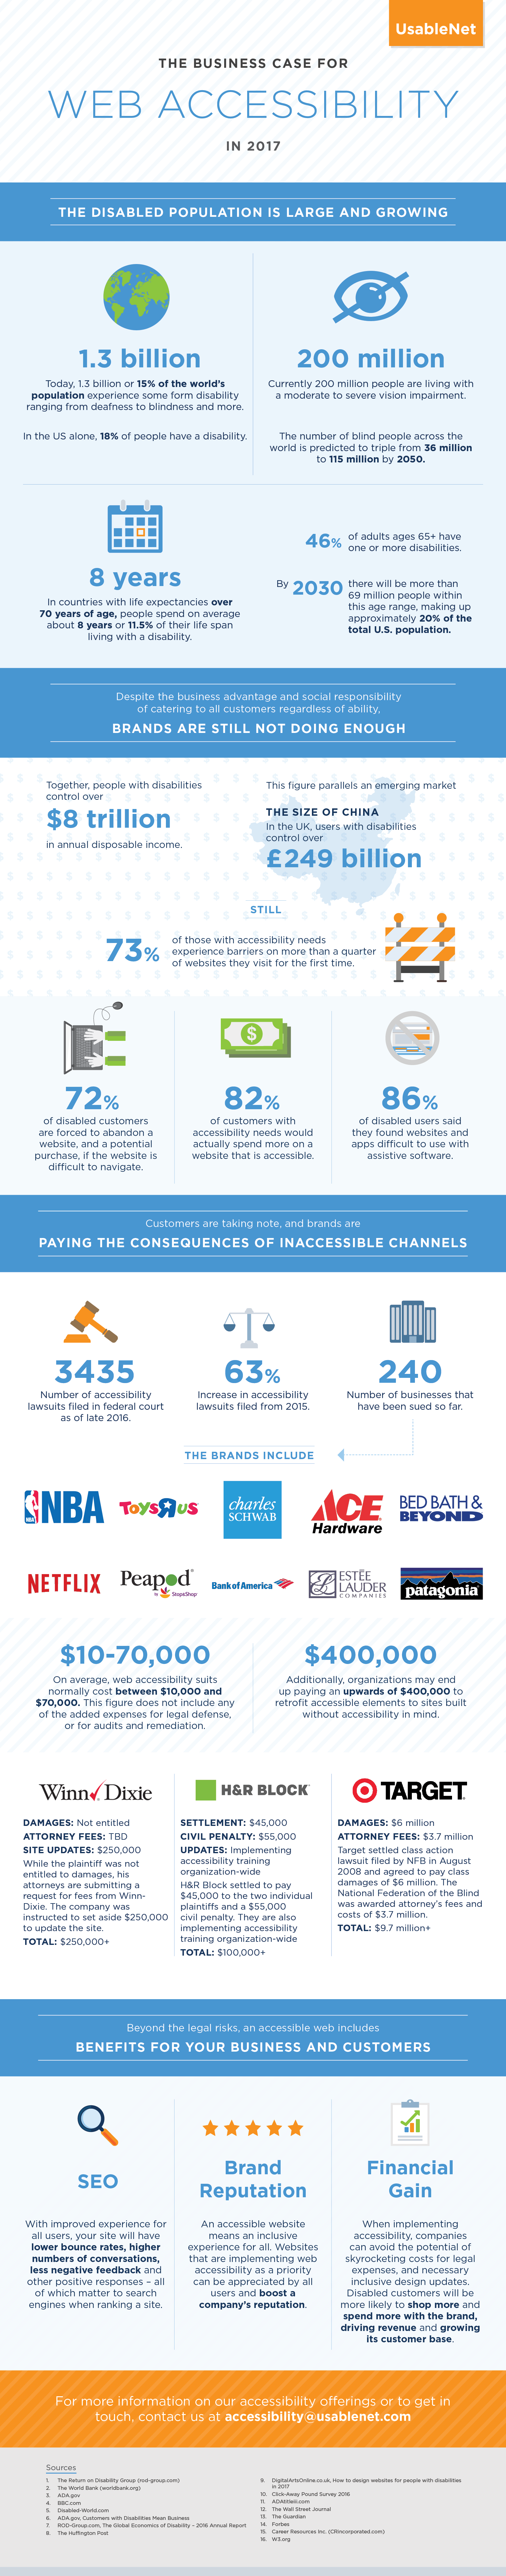 Business case for Web Accessibility Infographic